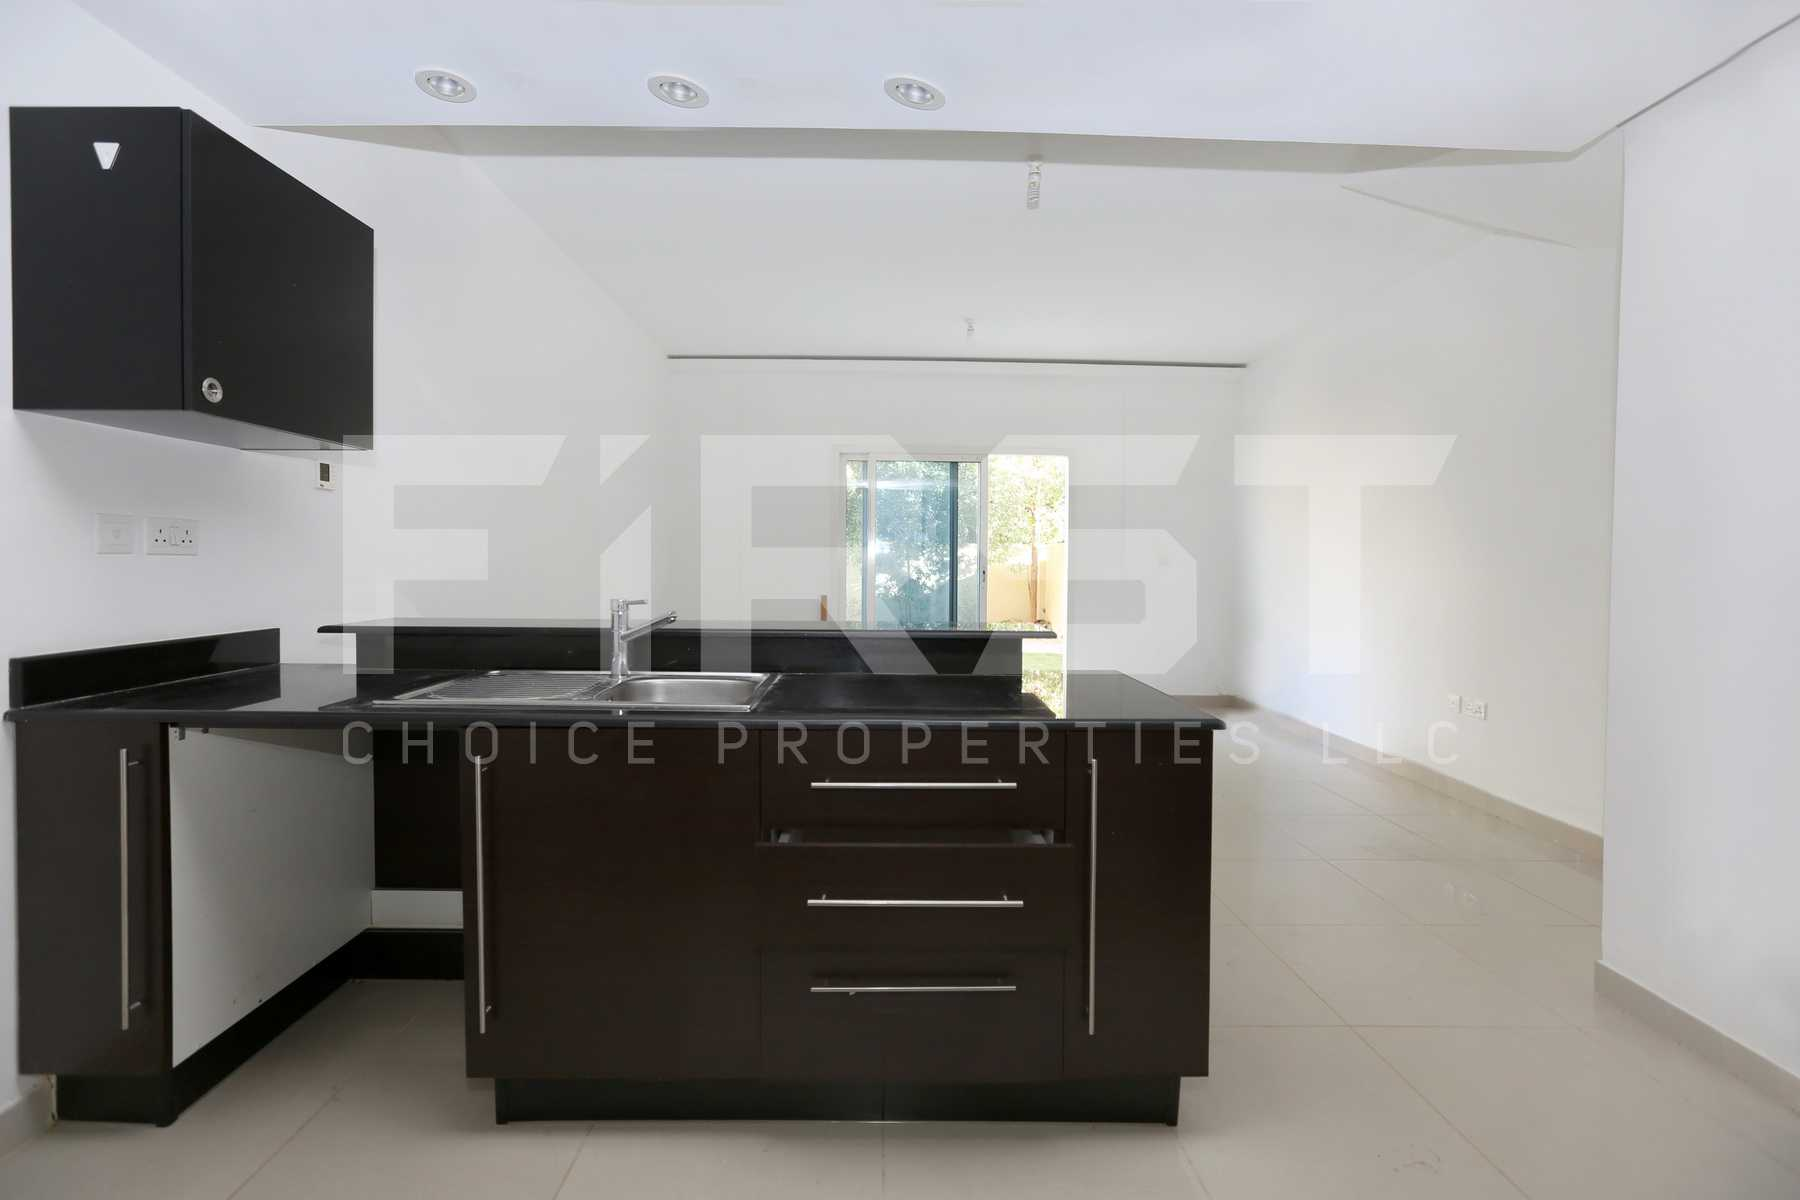 Internal Photo of 2 Bedroom Villa in Al Reef Villas  Al Reef Abu Dhabi UAE 170.2 sq.m 1832 sq.ft (5).jpg